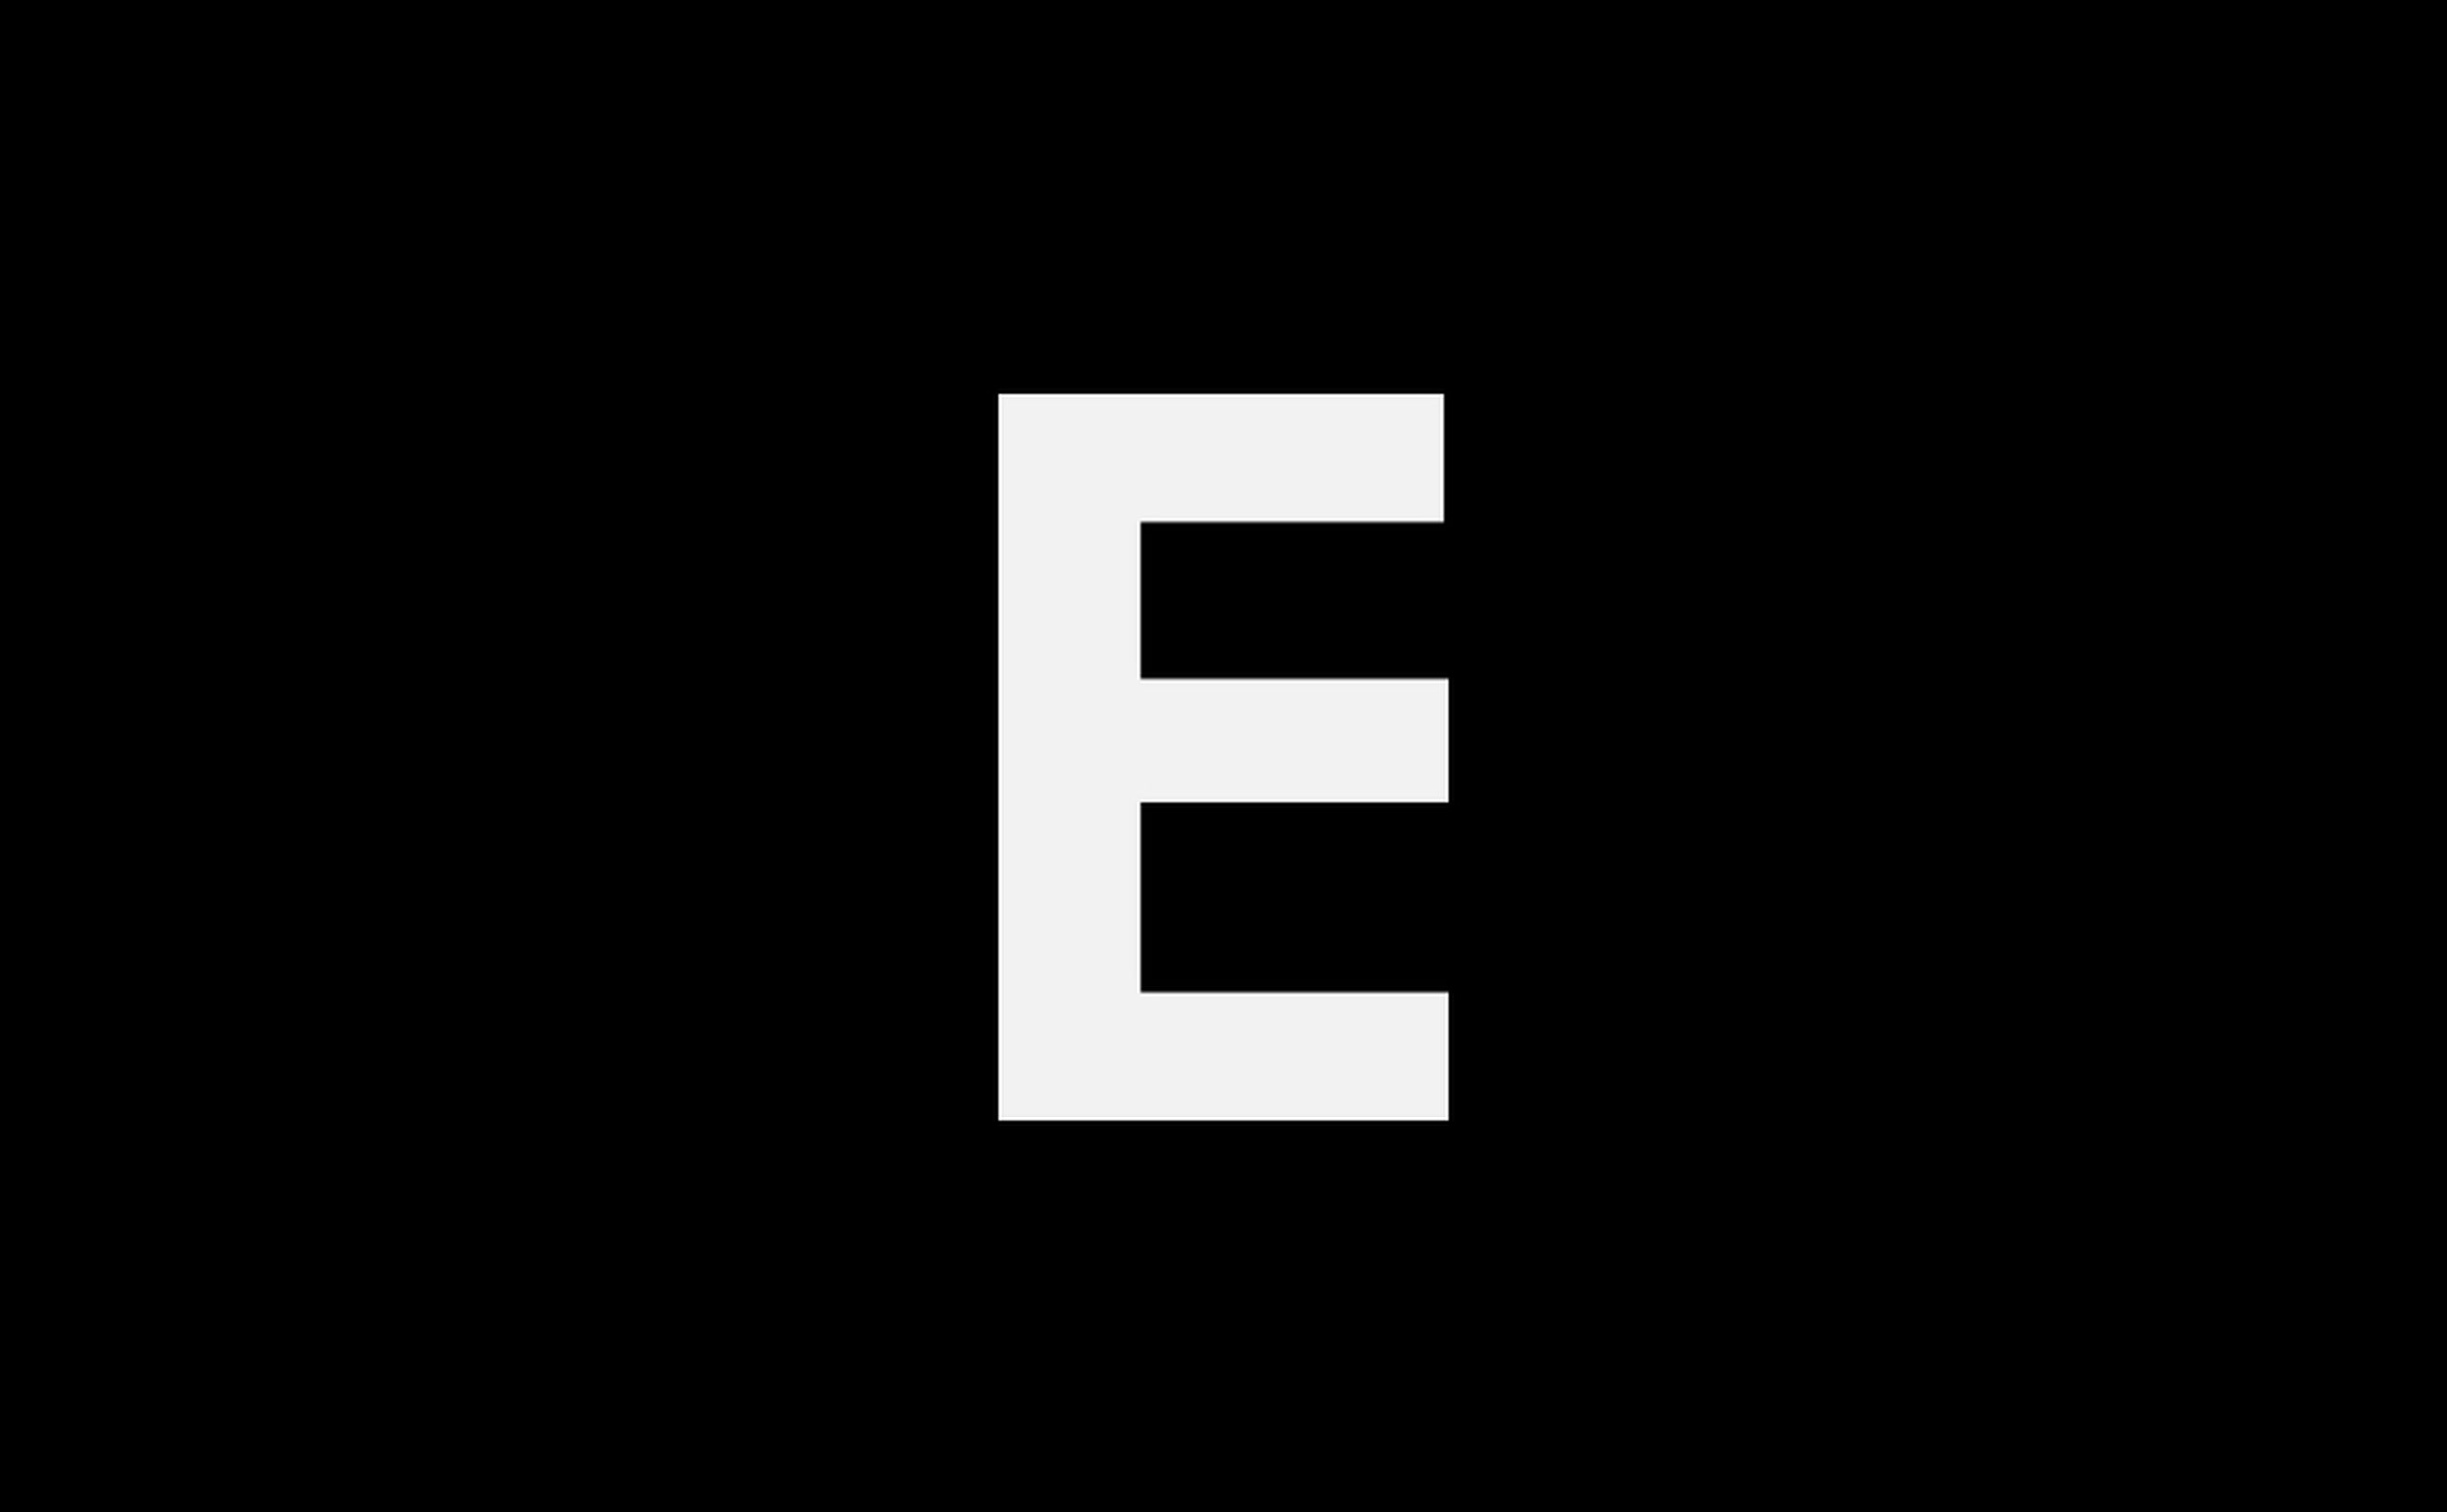 REAR VIEW OF SILHOUETTE PEOPLE AT NIGHTCLUB